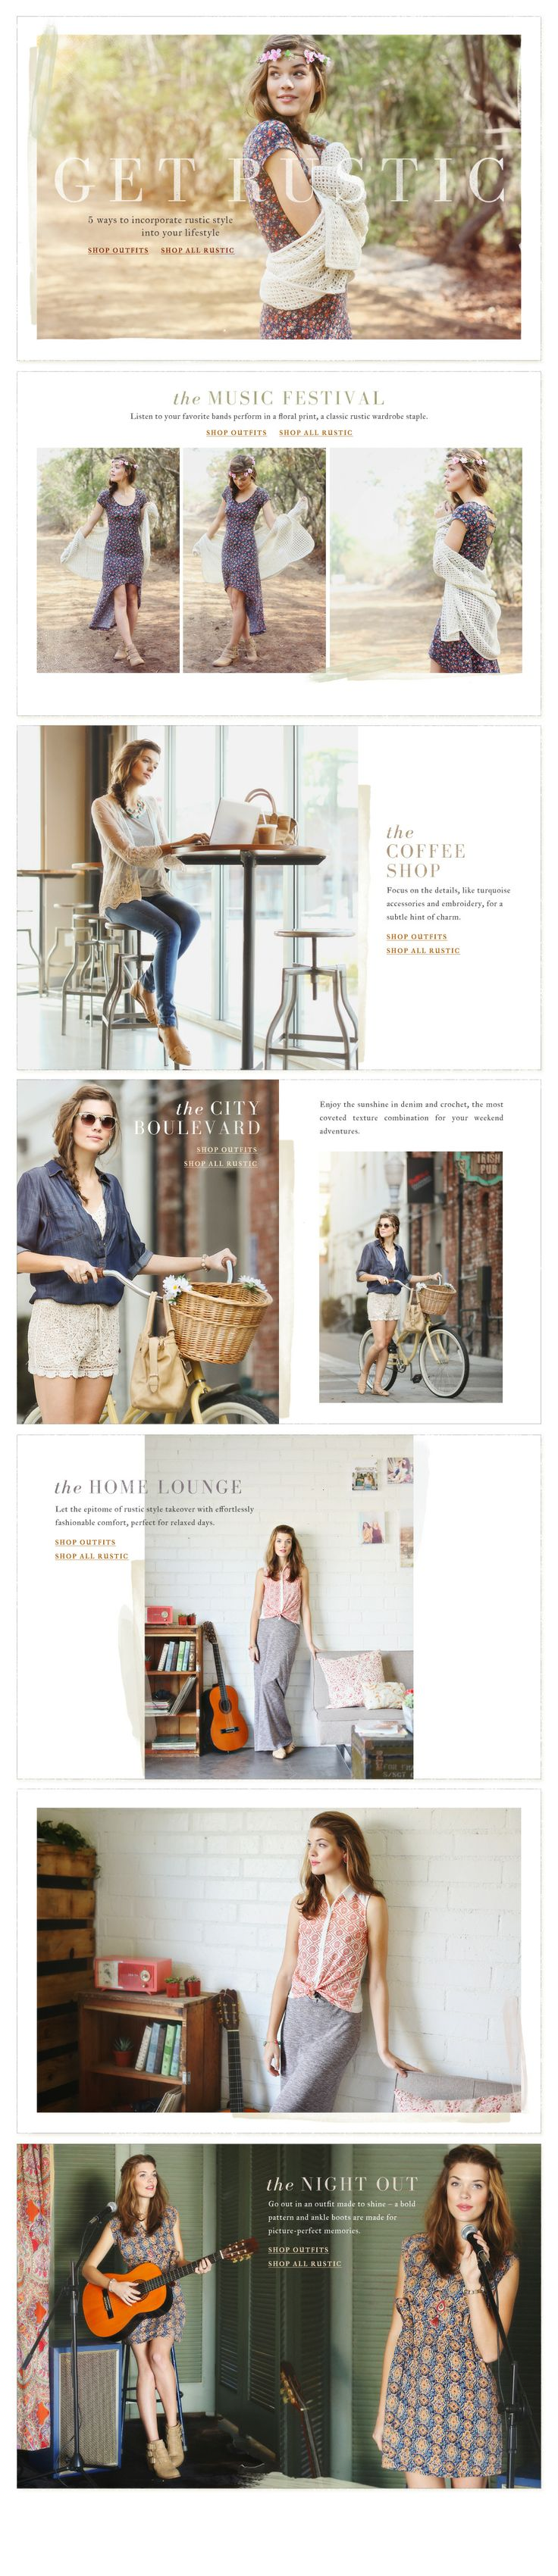 Get Rustic. Ruche is absolutely my favorite place to shop for clothes. SO cute, chic, and simple! These outfits are perfect for spring.